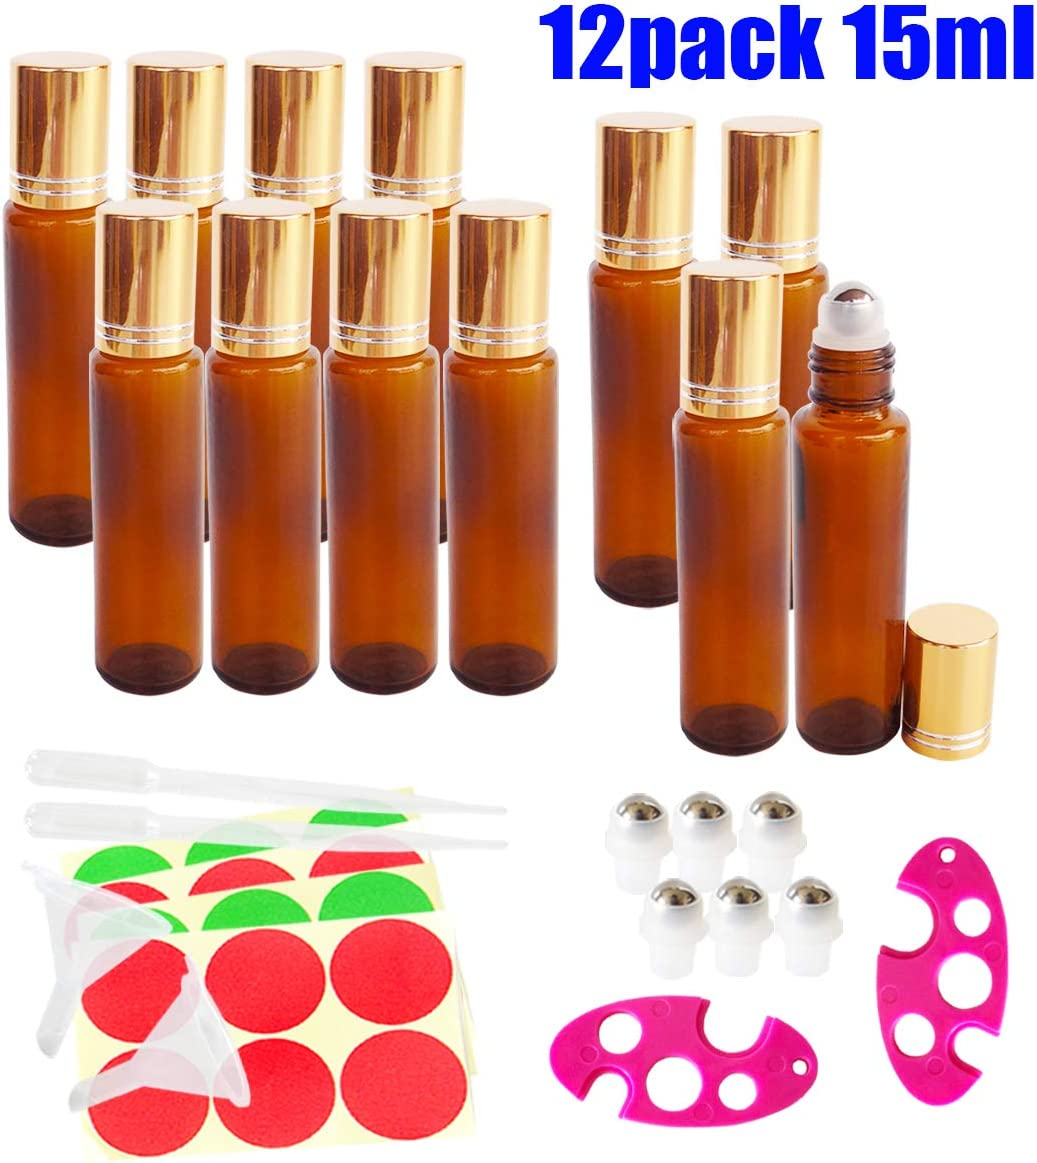 12x 15ml Empty Amber Glass Roll-on Bottles, Sample Refillable Cosmetic Container for Essential Oil Perfume, Extra 3ml Dropper, Mini Funnel, Bottle Opener, 6 Roller Balls, 24 Pieces Labels